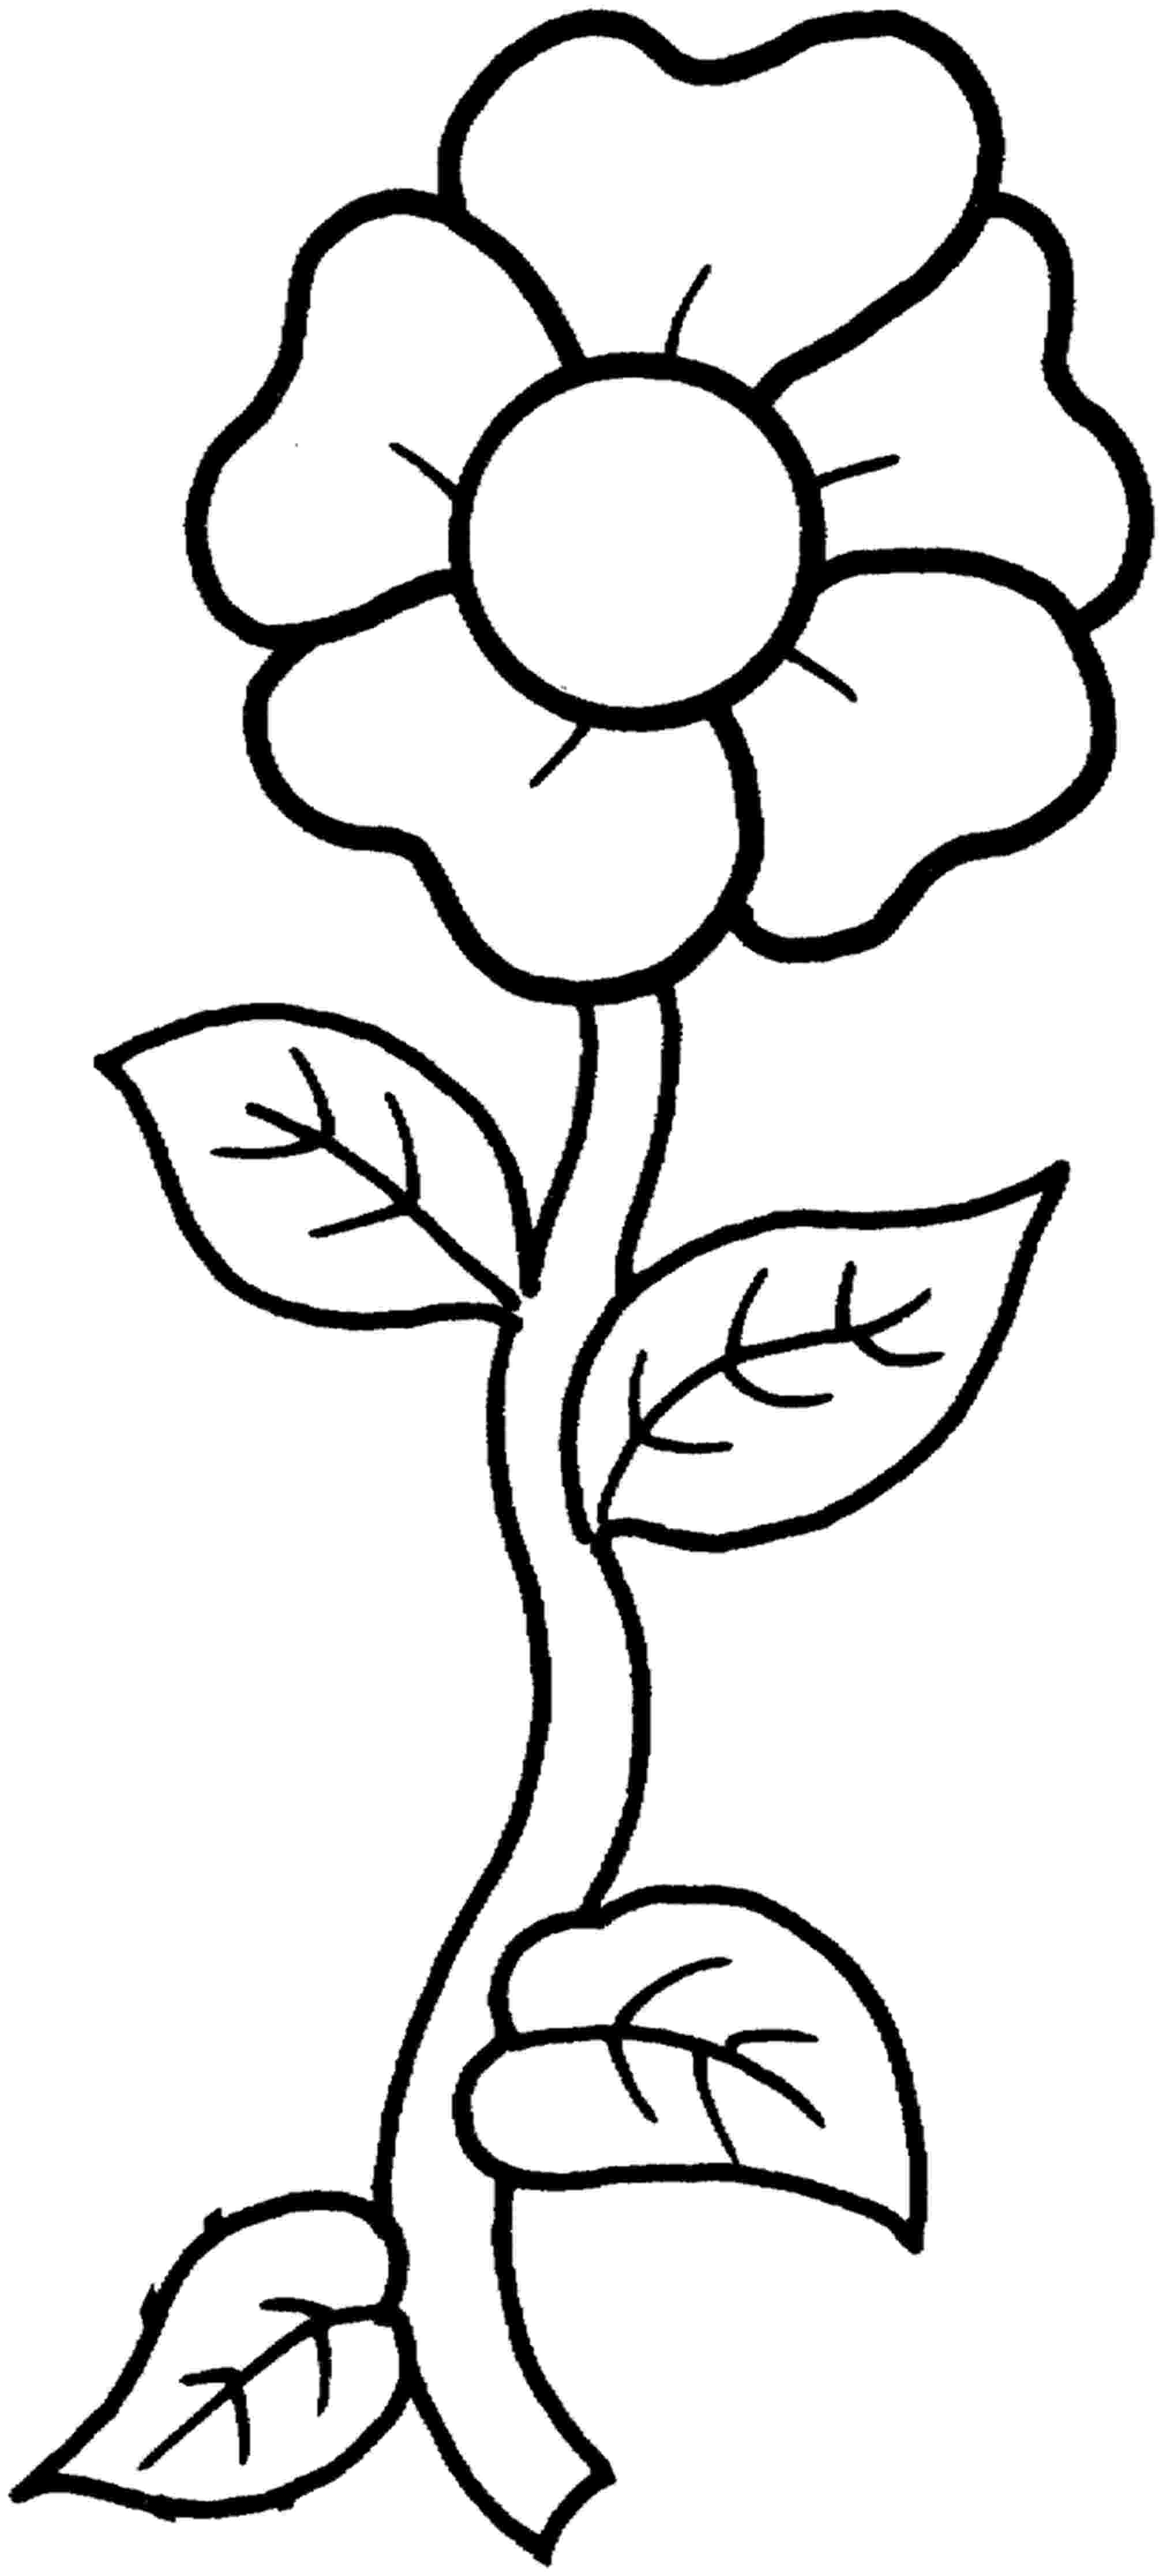 flower color pictures flowers coloring pages coloringpages1001com flower pictures color